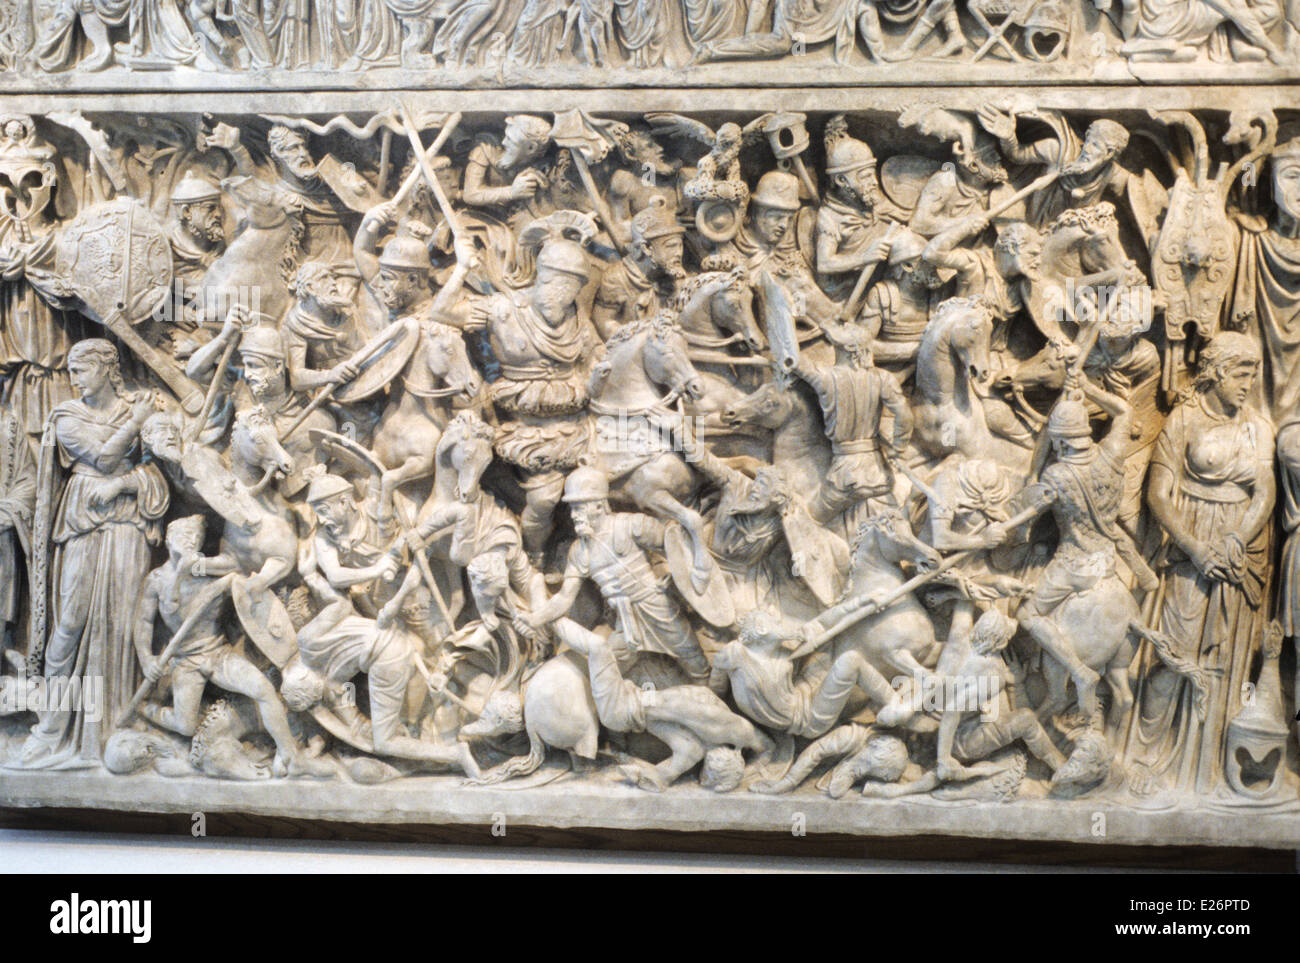 Roman history,the Romans against the Barbarians,detail of a sarcophagus from the 2nd century BC,Roman National Museum,Rome - Stock Image